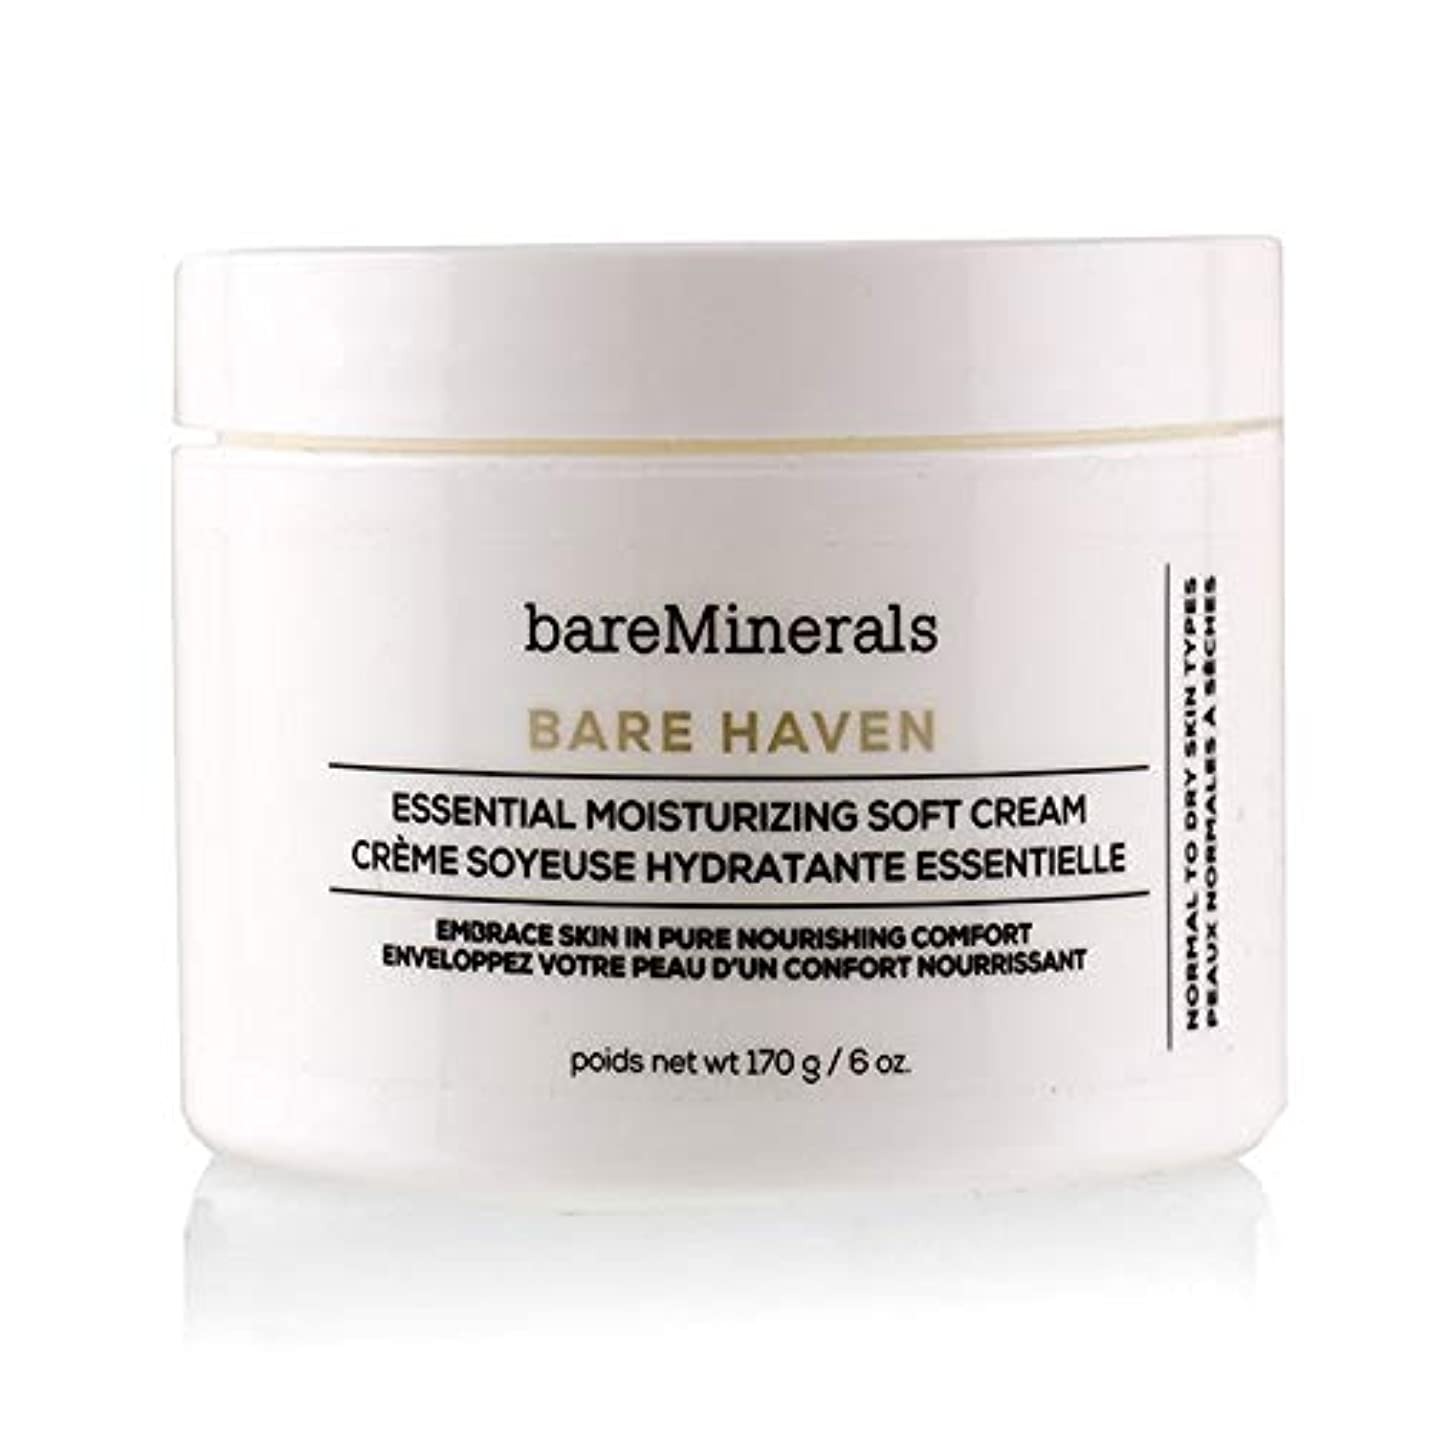 ベアミネラル Bare Haven Essential Moisturizing Soft Cream - Normal To Dry Skin Types (Salon Size) 170g/6oz並行輸入品